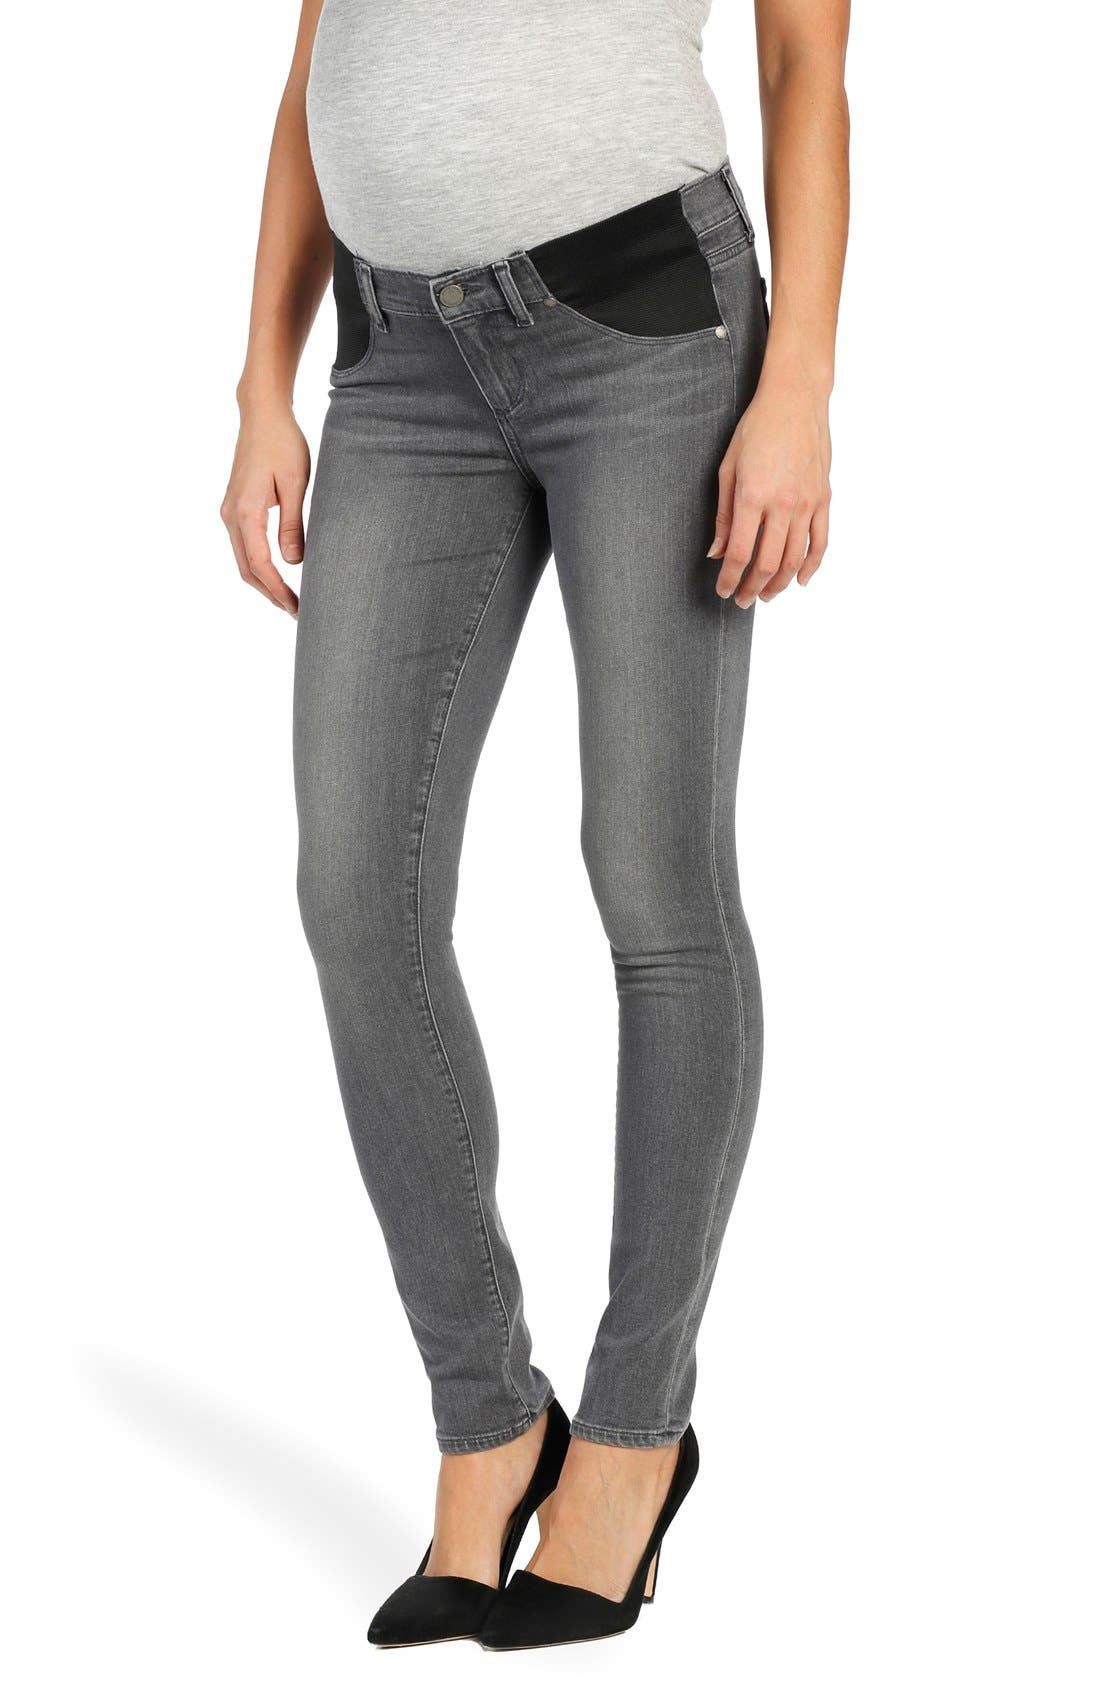 Maternity Skinny Jeans. invalid category id. Maternity Skinny Jeans. Showing 16 of 16 results that match your query. Search Product Result. Product - Maternity Full Panel Skinny Boyfriend Pant with 5 Pockets and Roll Cuffs--Available in Plus Size. Product Image. Price $ Product Title.